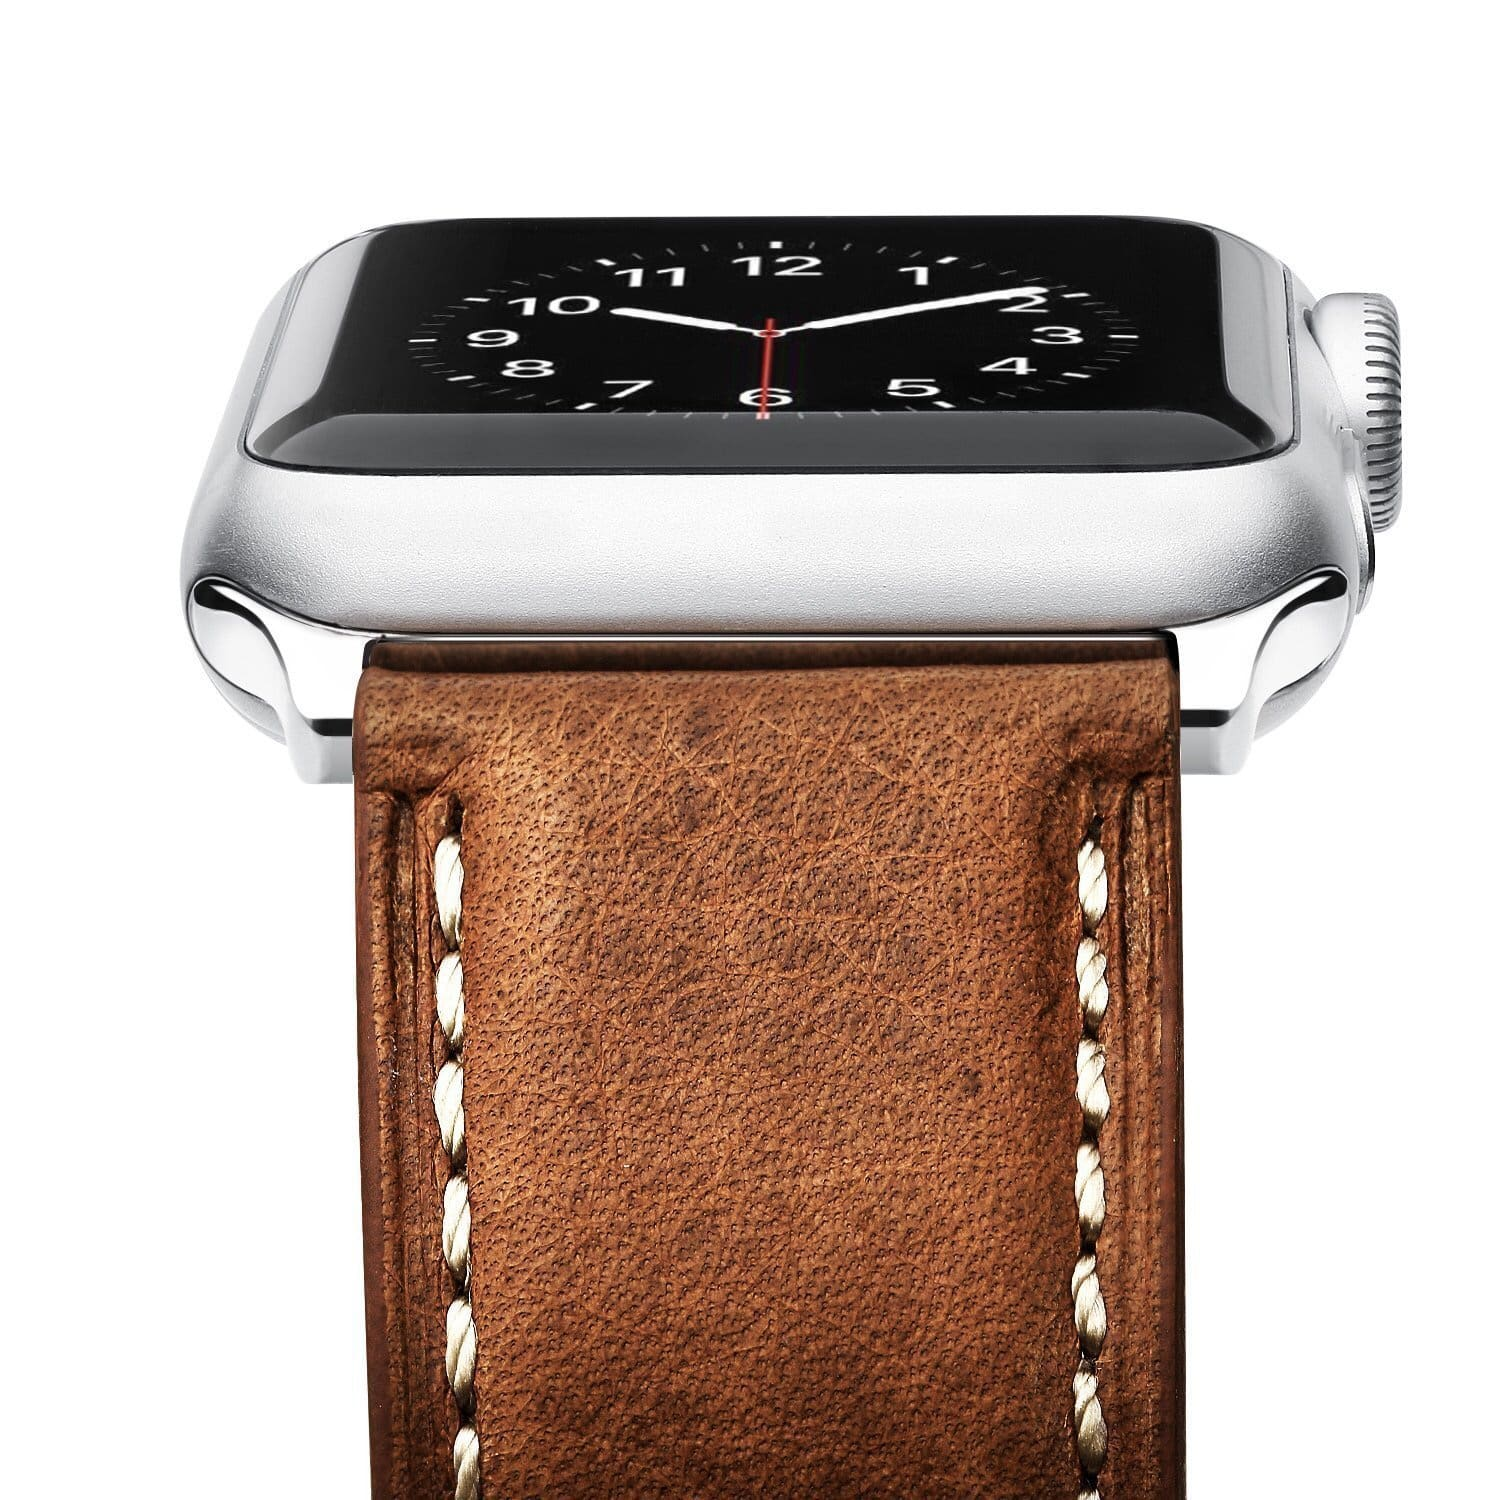 53%off - $8.46 Benuo Versatile Bands for Apple Watch 3/2/1-Free Shipping @Amazon  $8.46/ Promotion Code:U8H3436W